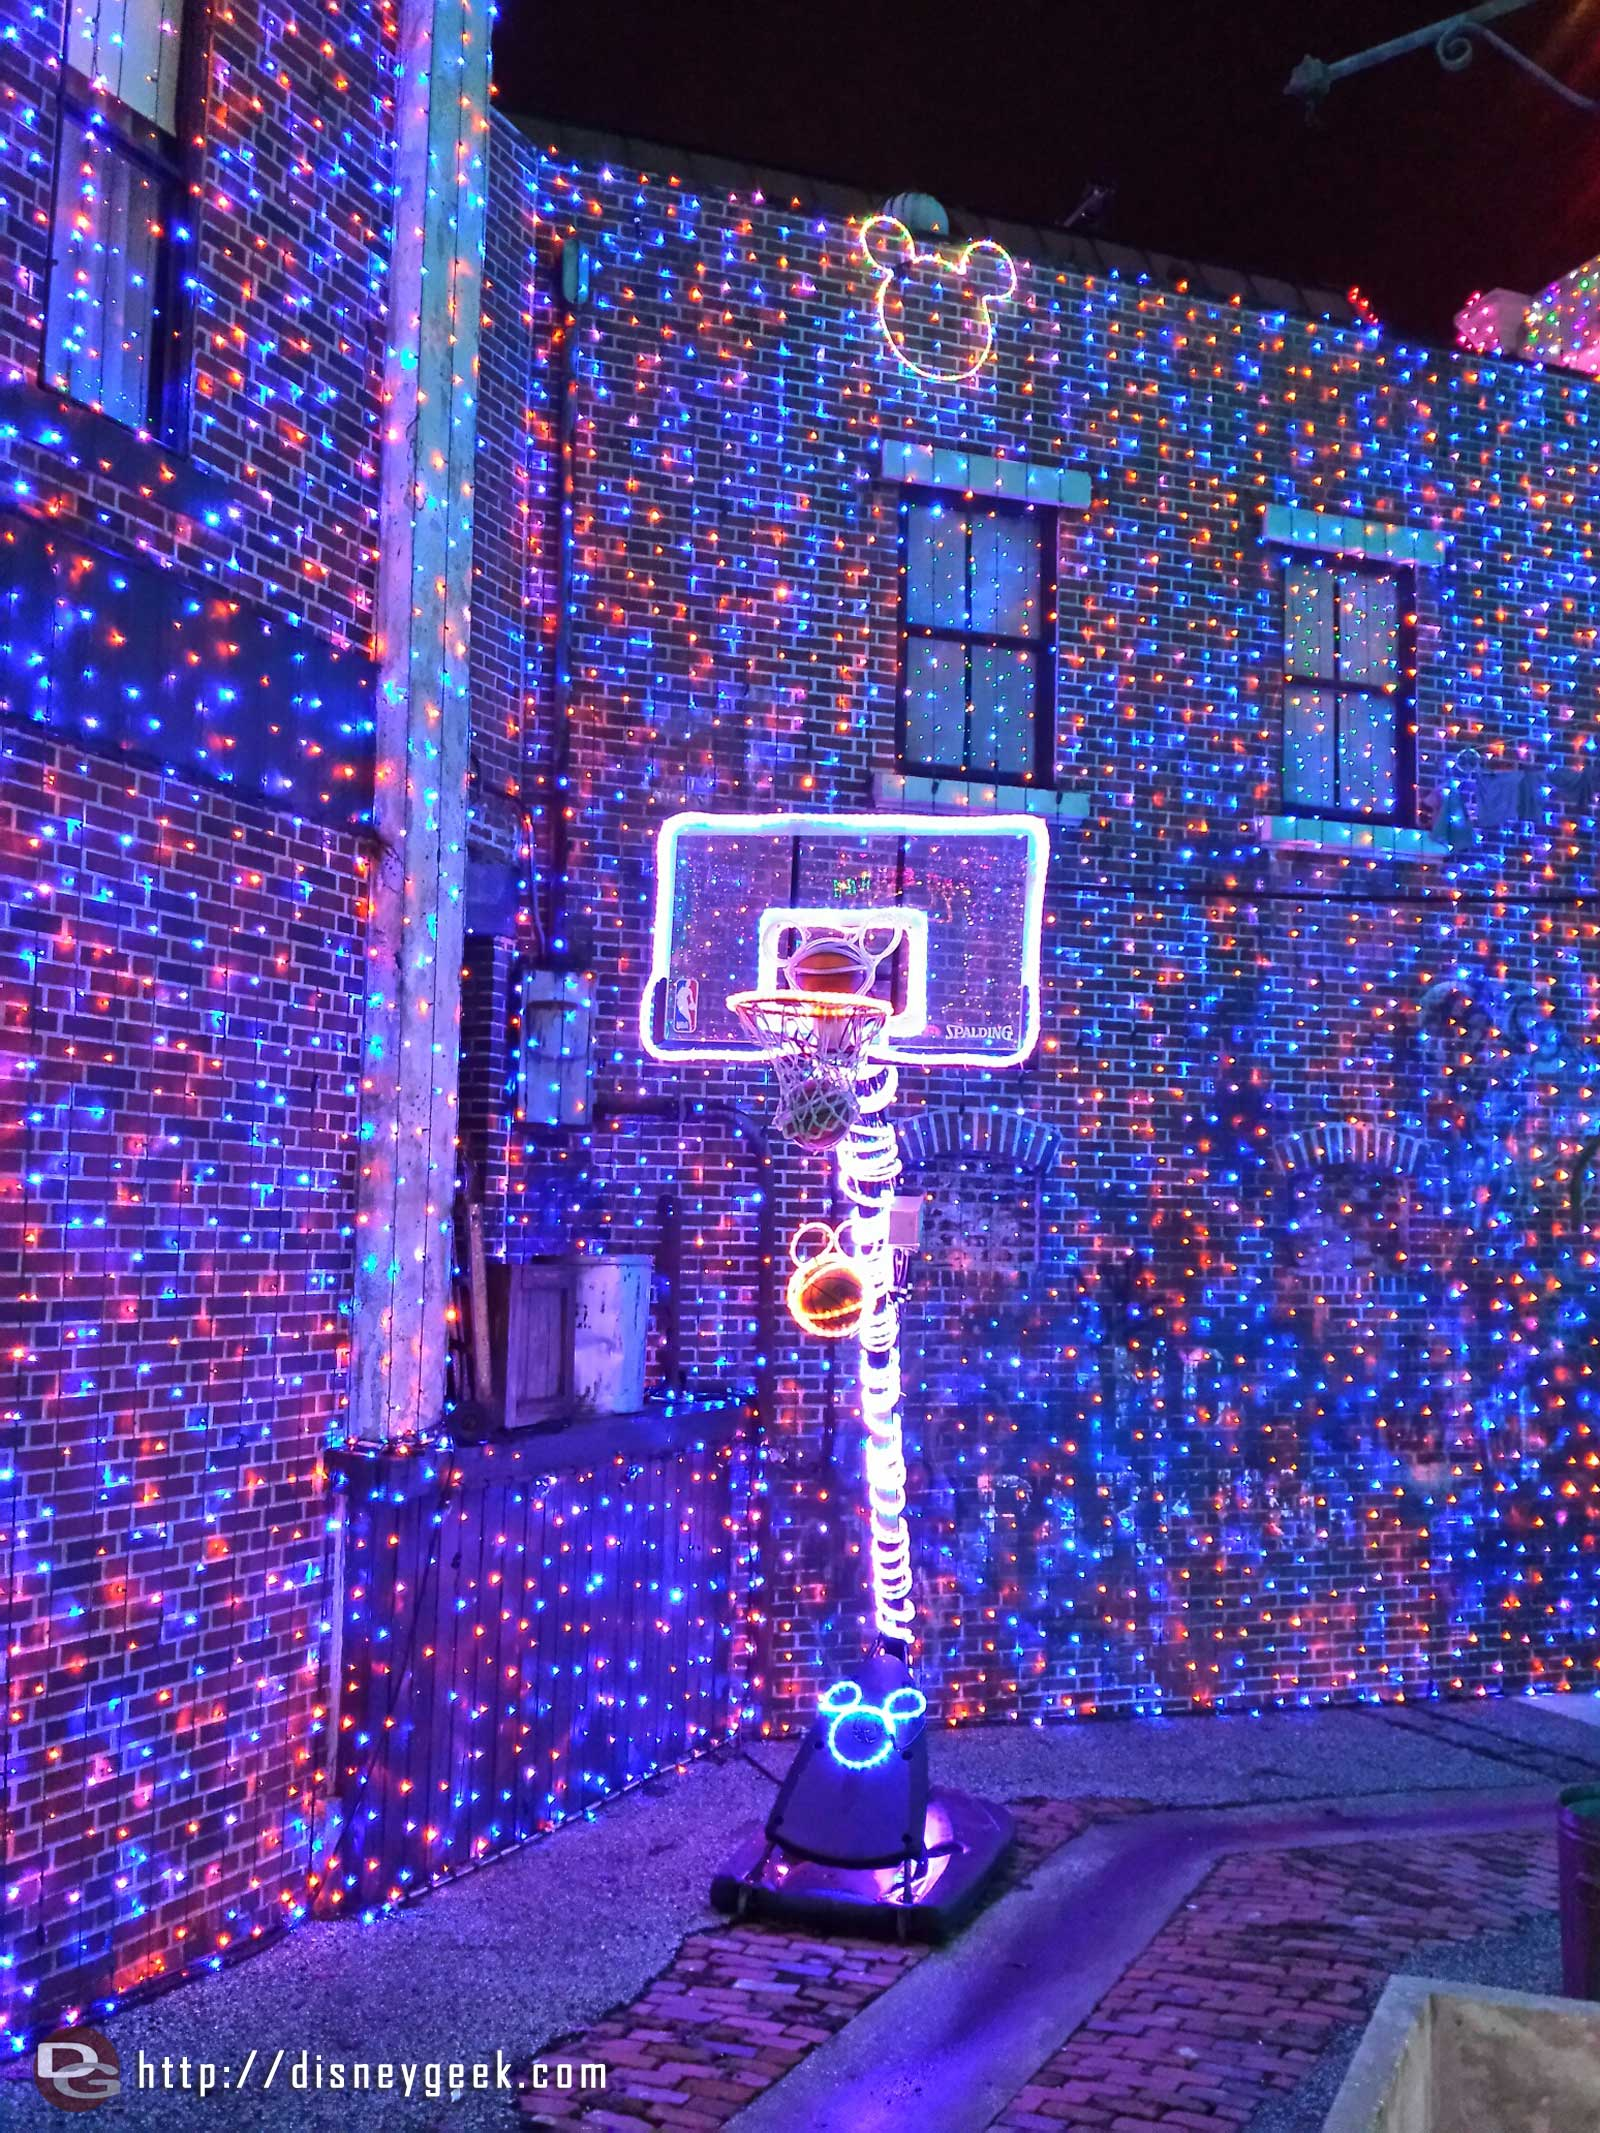 Basketball & Hidden Mickeys – Osborne Family Spectacle of Dancing Lights at Disney's Hollywood Studios